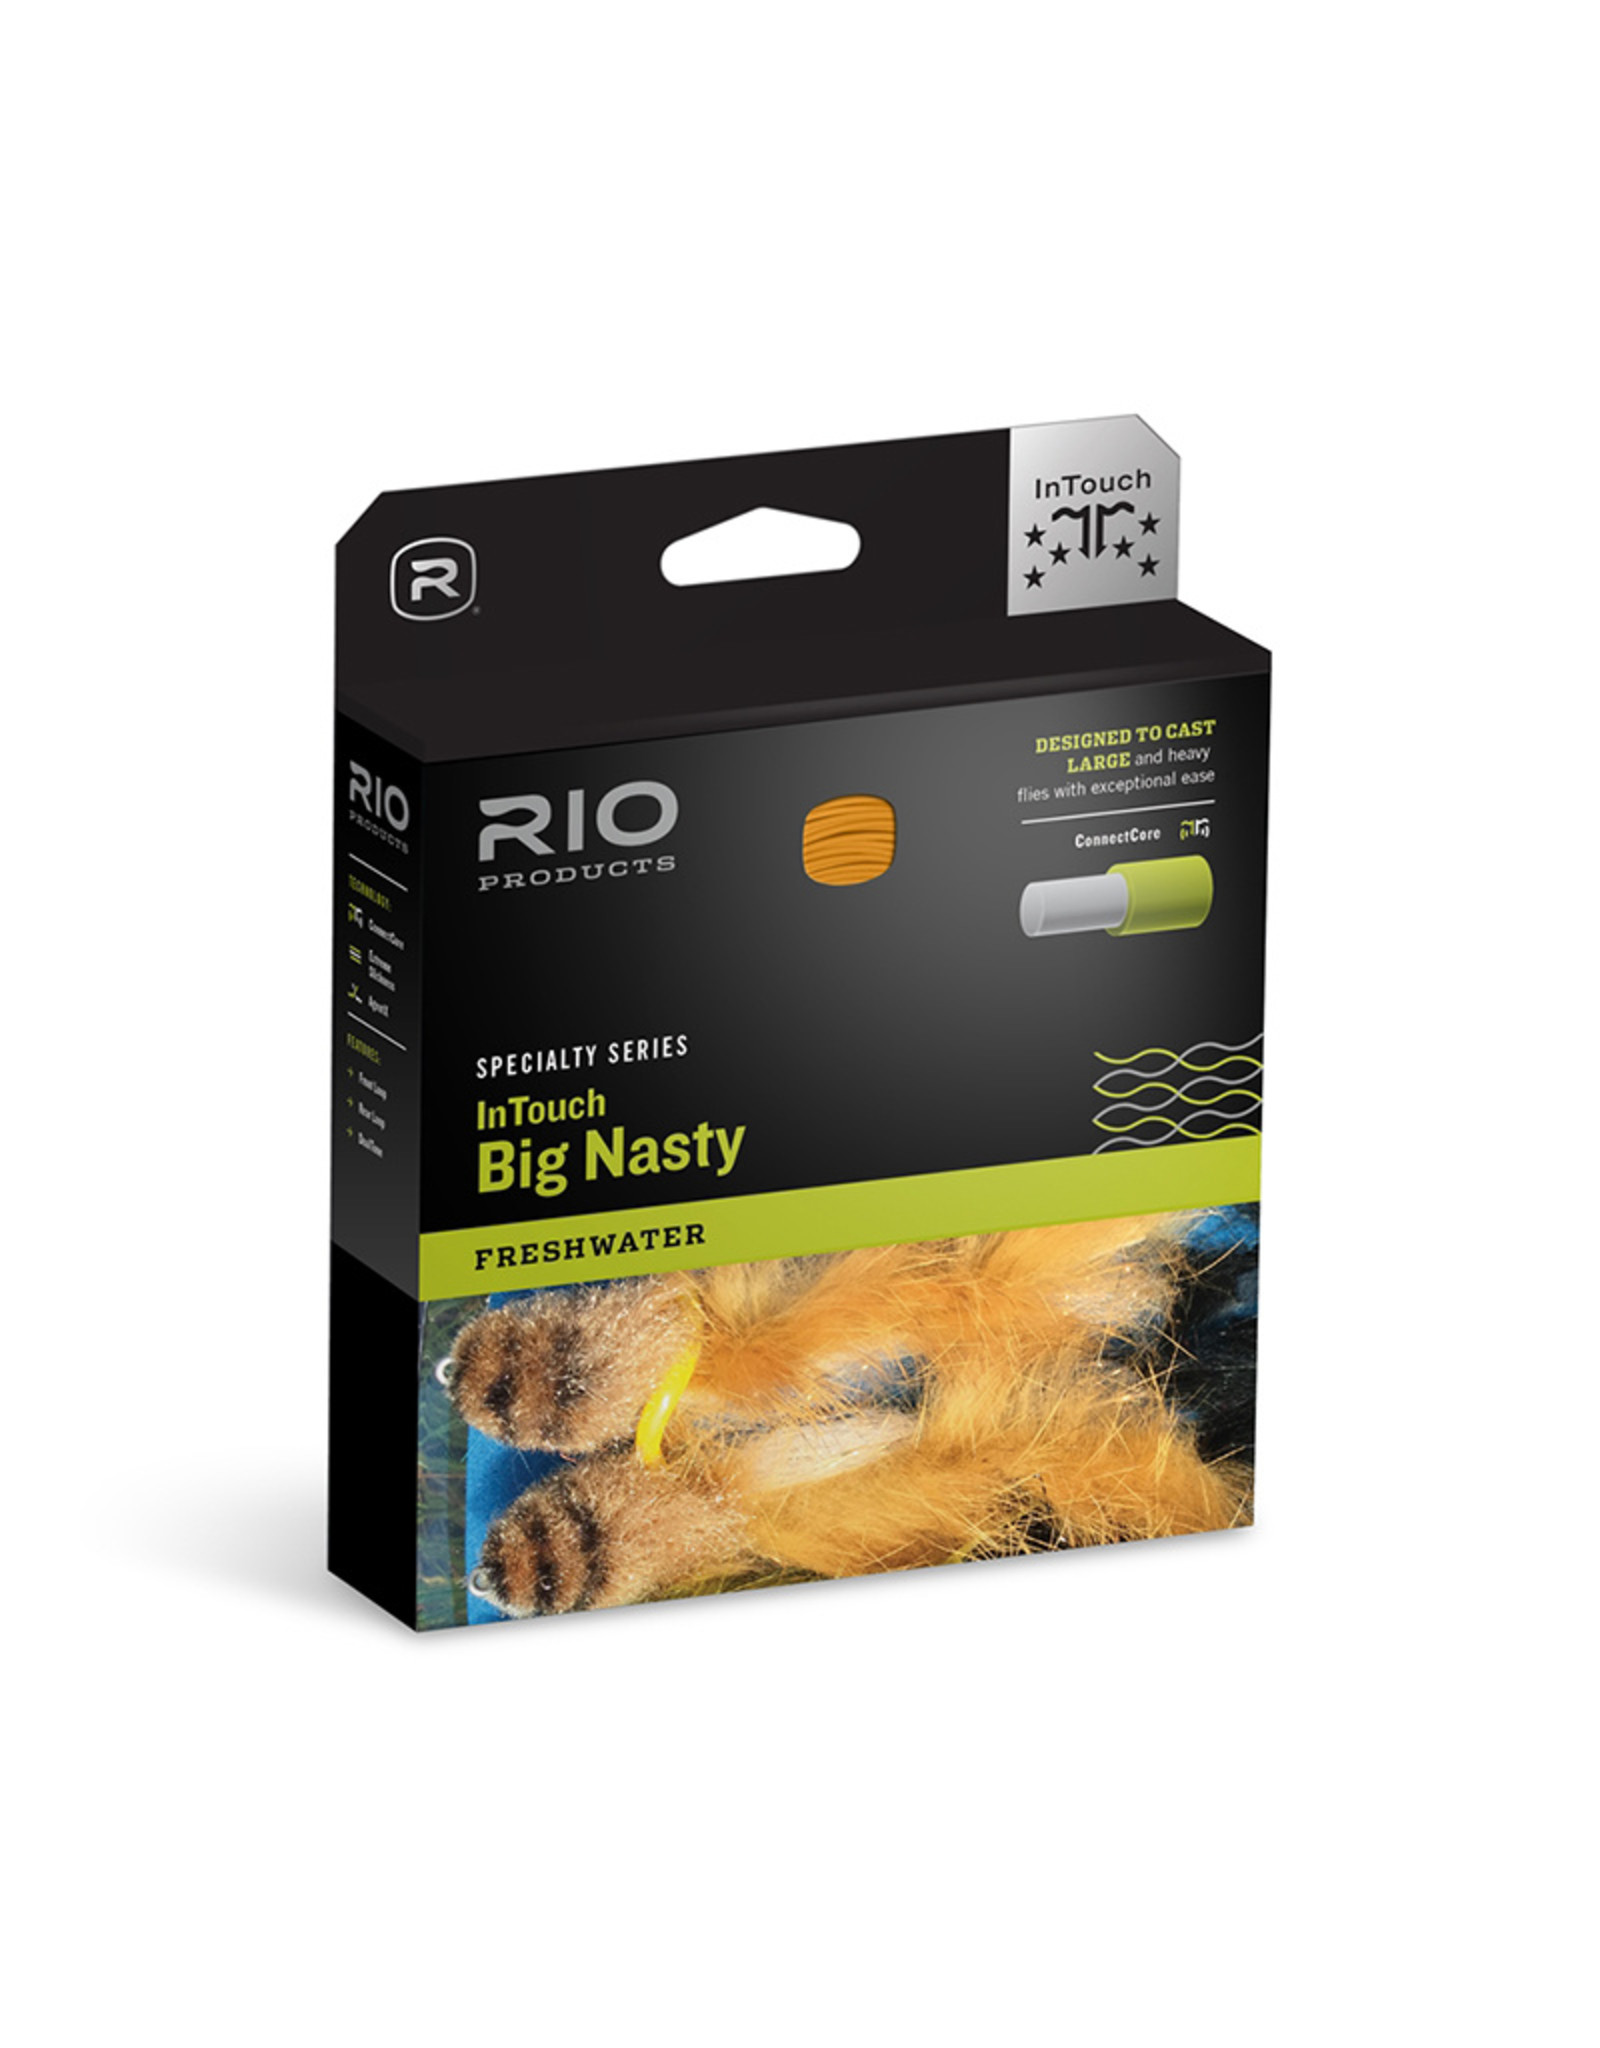 RIO Products InTouch Big Nasty